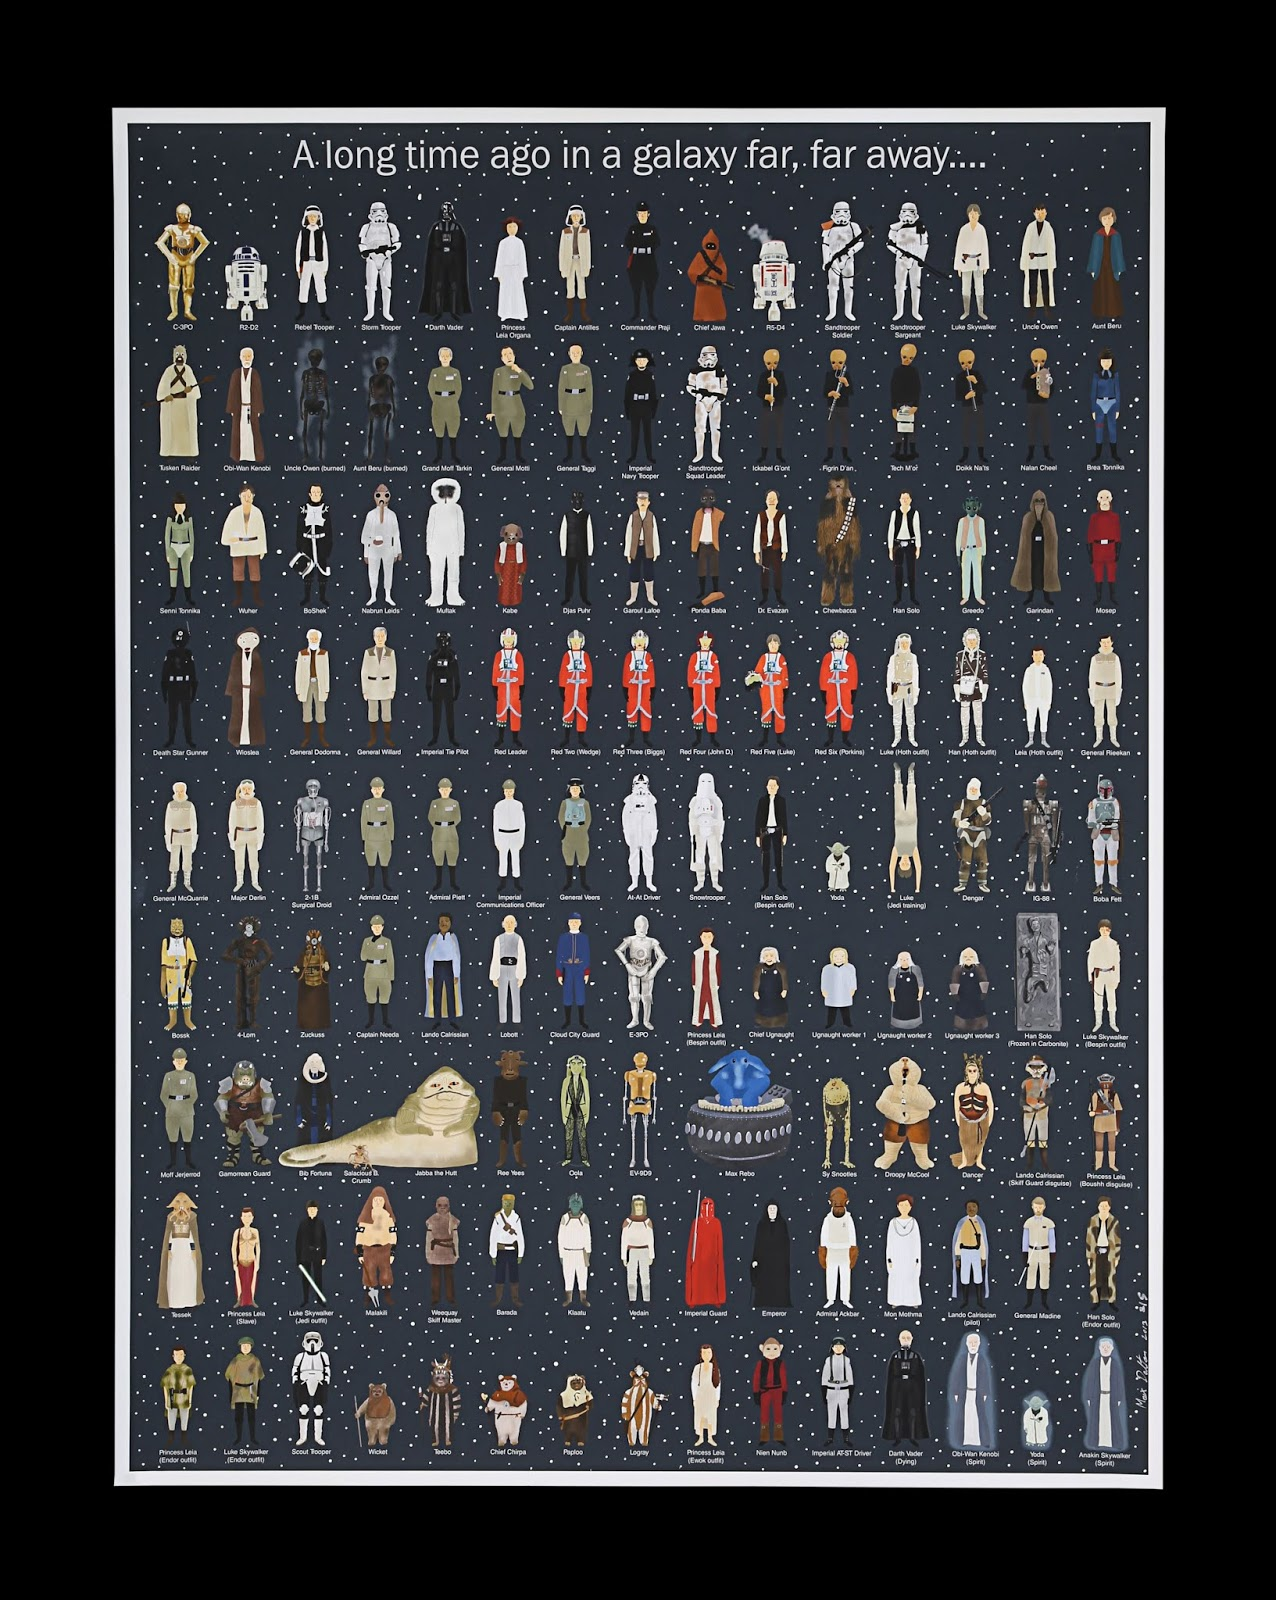 STAR WARS ORIGINAL TRILOGY (1977-83) - Mondo Poster